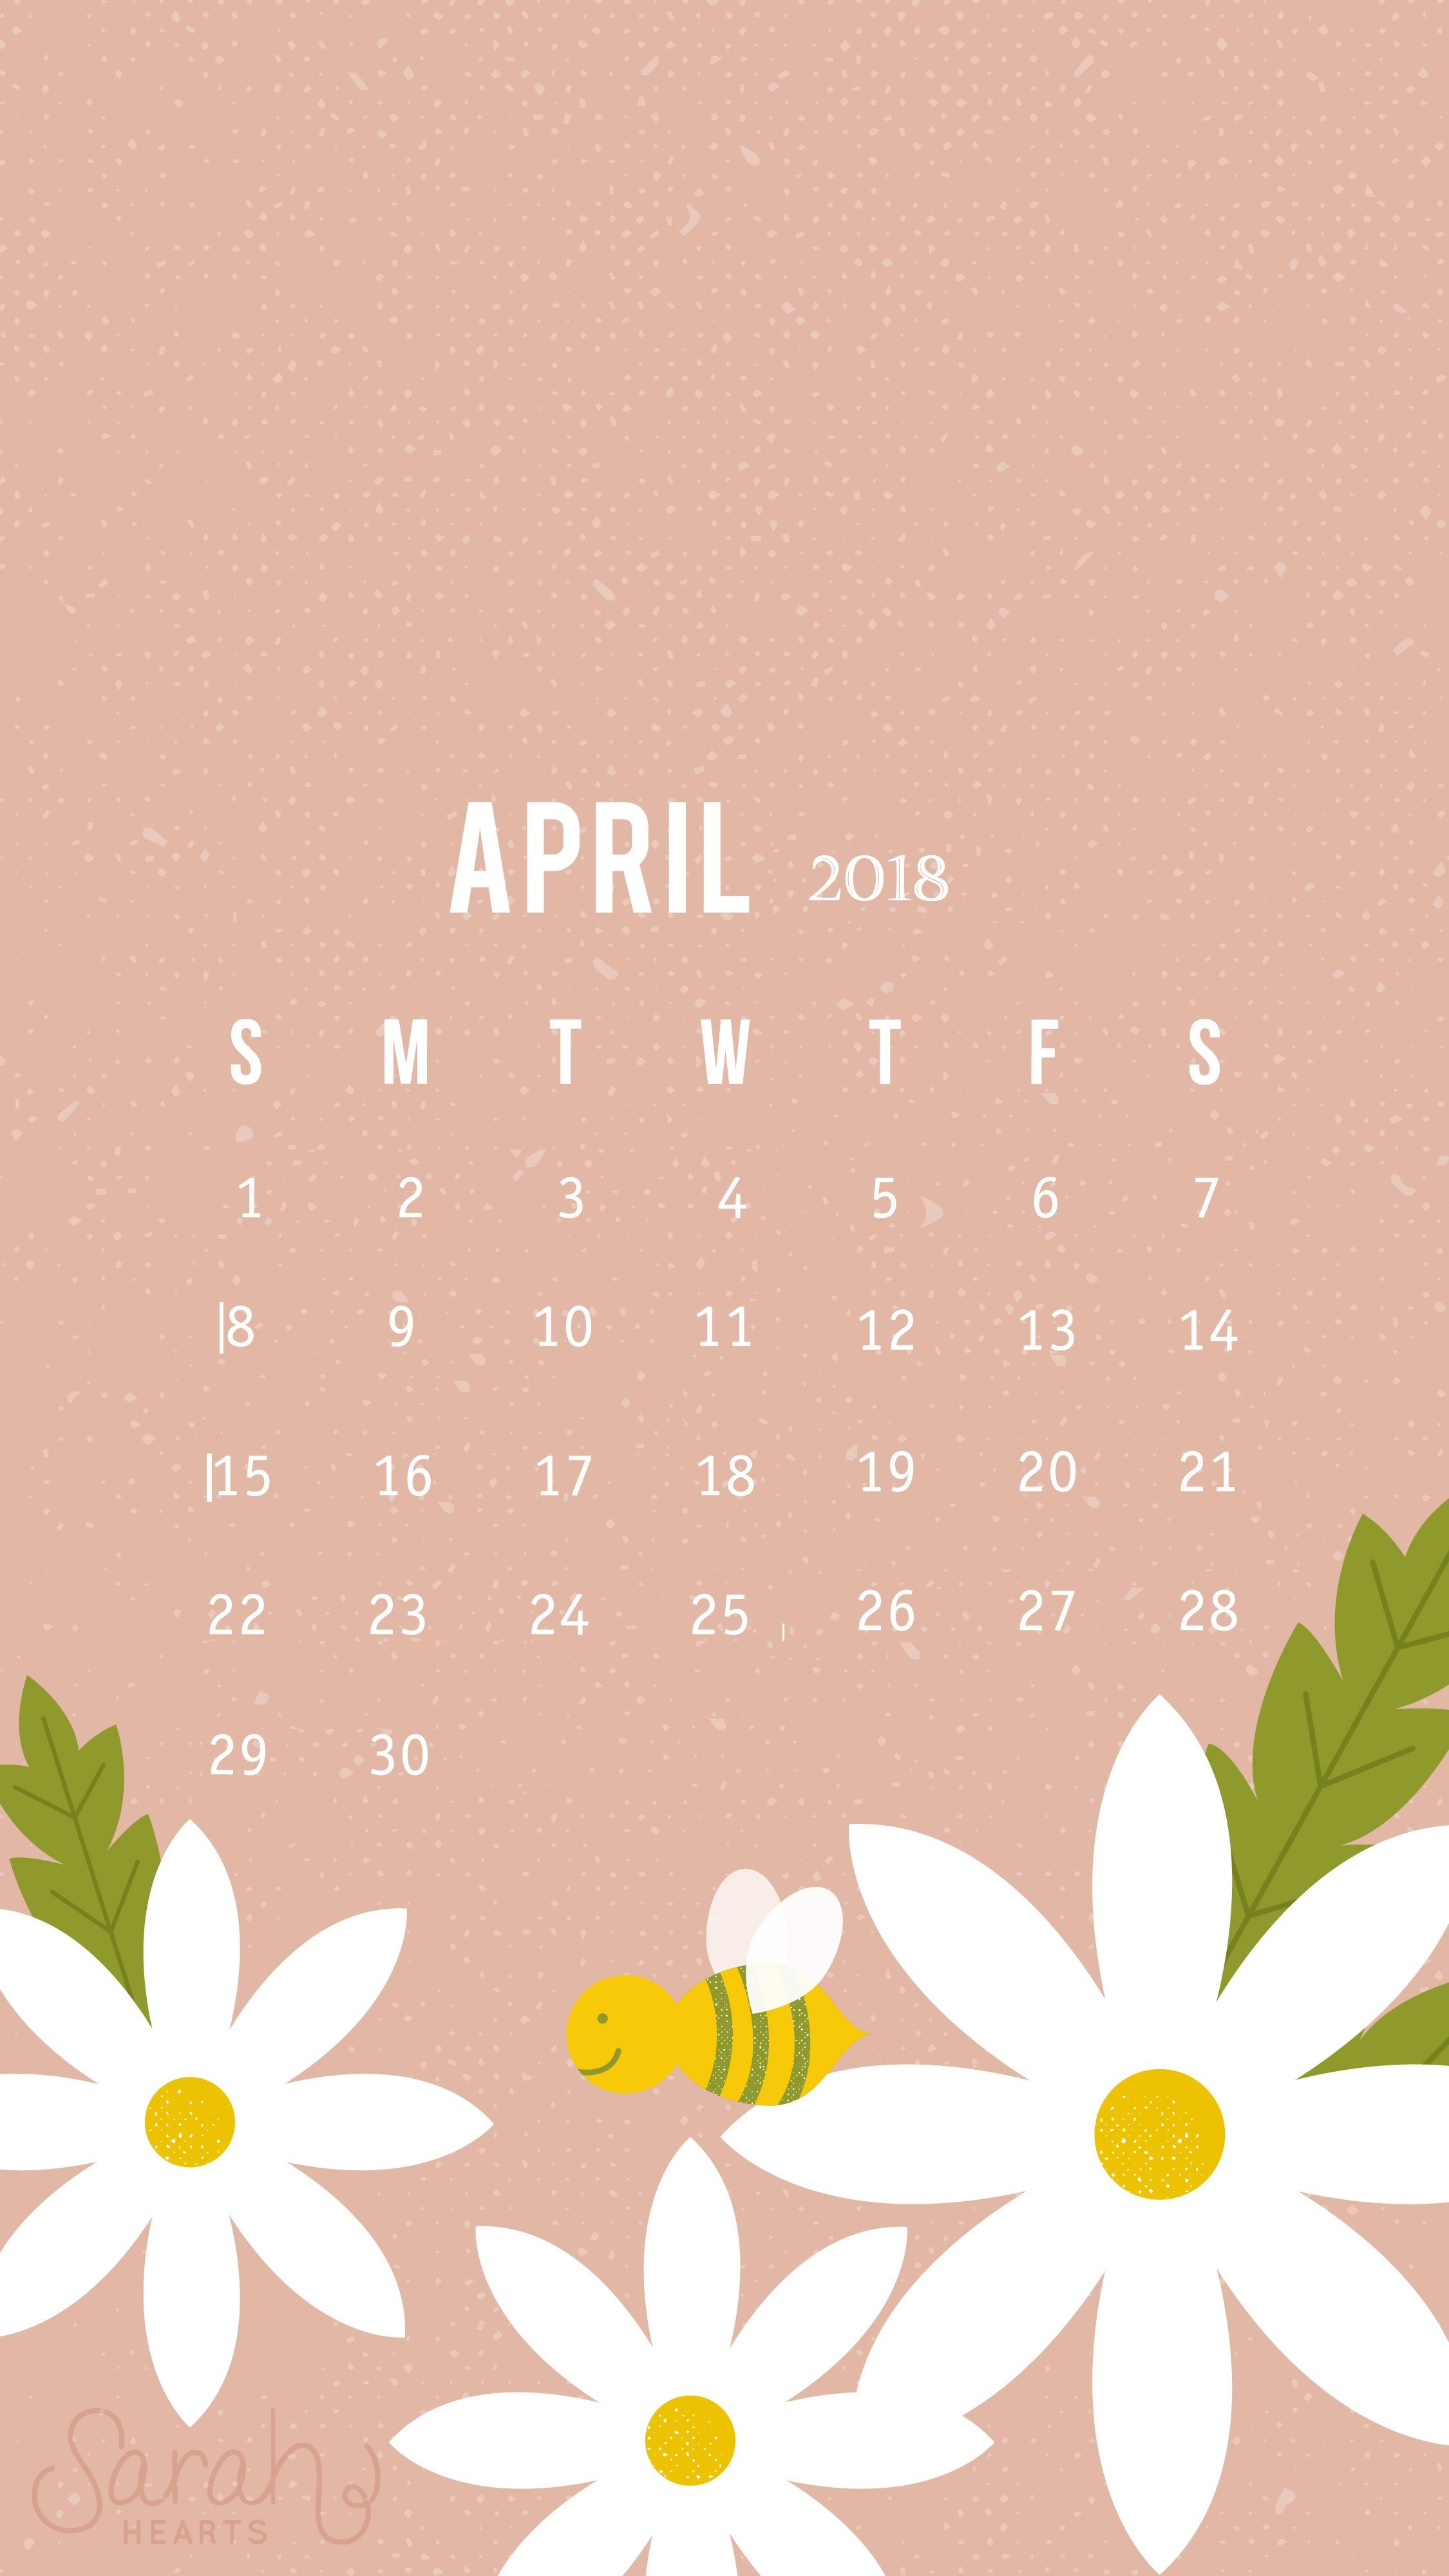 Cute April 2018 Iphone Calendar Wallpaper Calendar 2018 Calendar